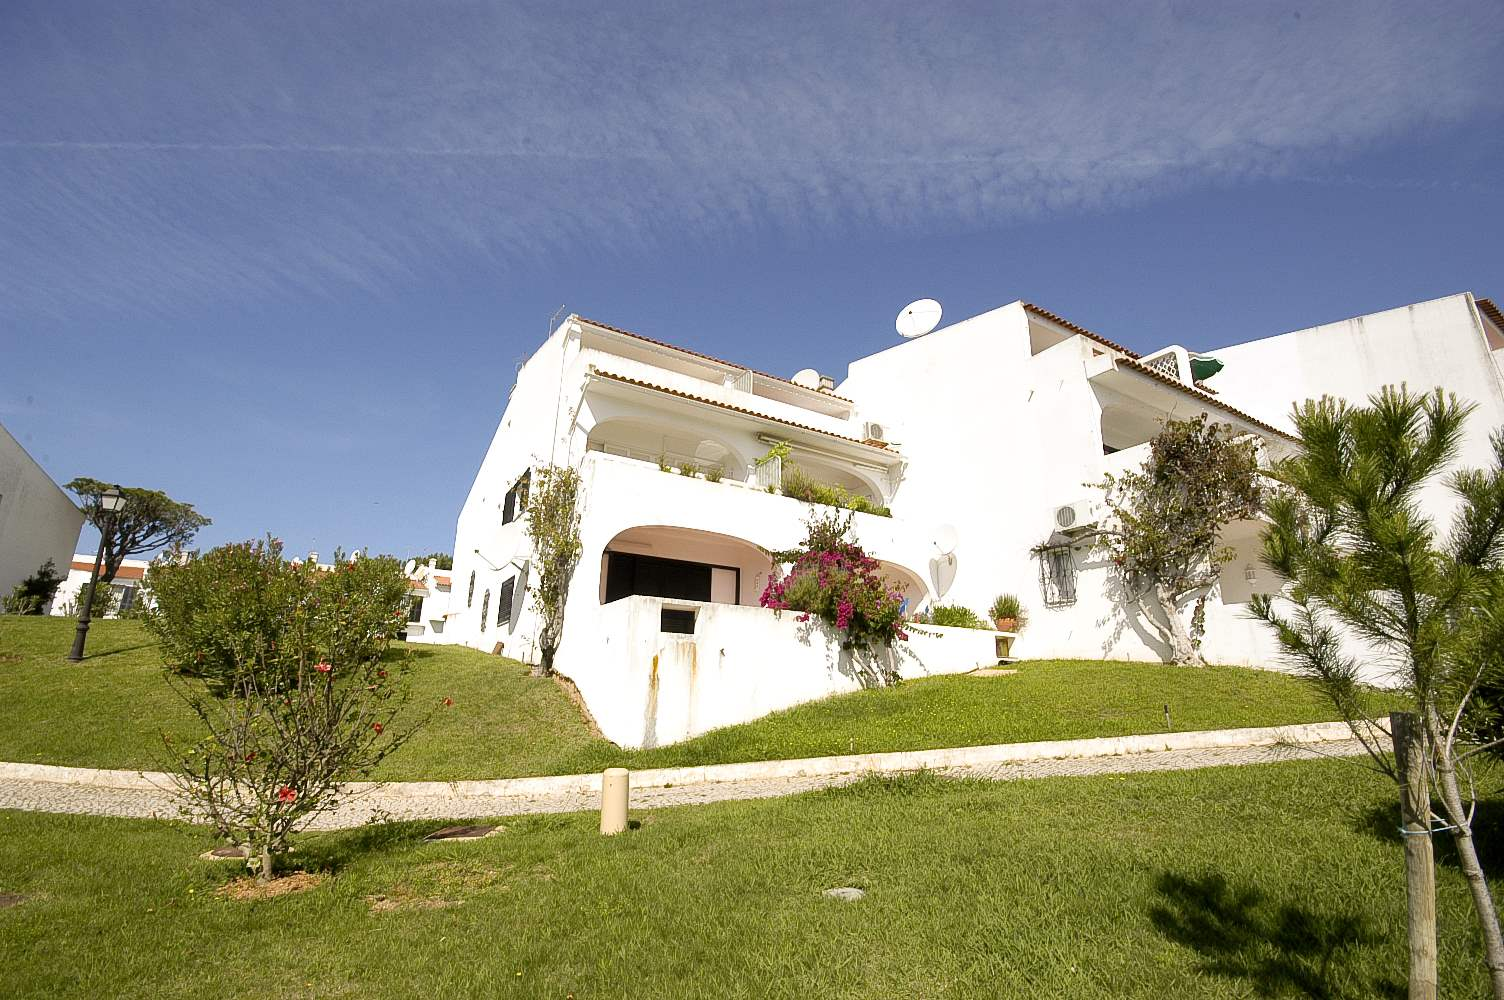 Apartment Azalea 2, 2 bedroom apartment in Vale do Lobo, Algarve Photo #1